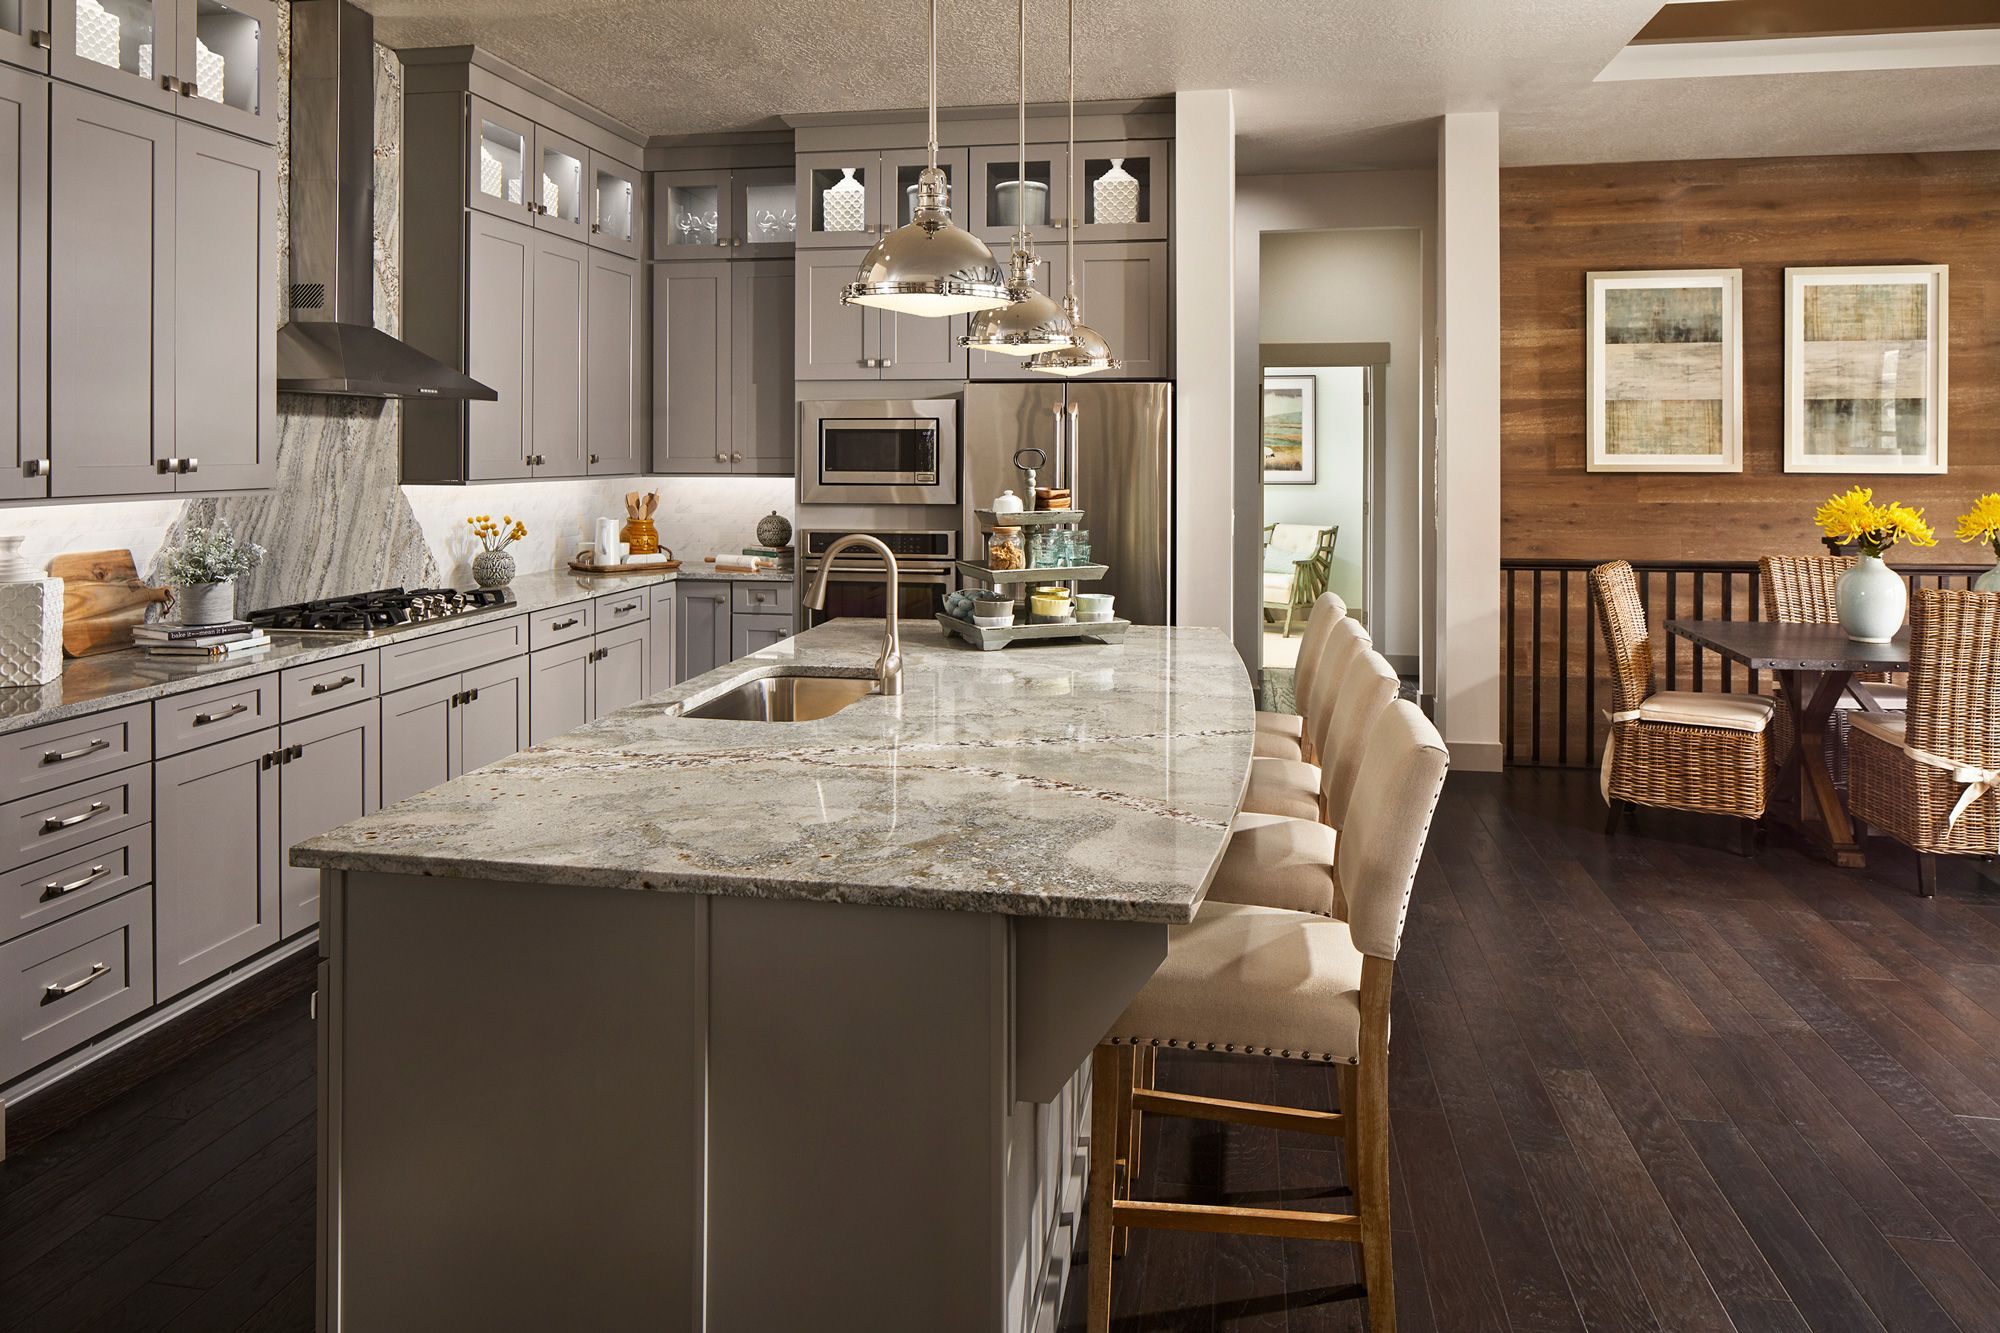 The Pennfield is located in Draper, UT. Gray kitchen ...